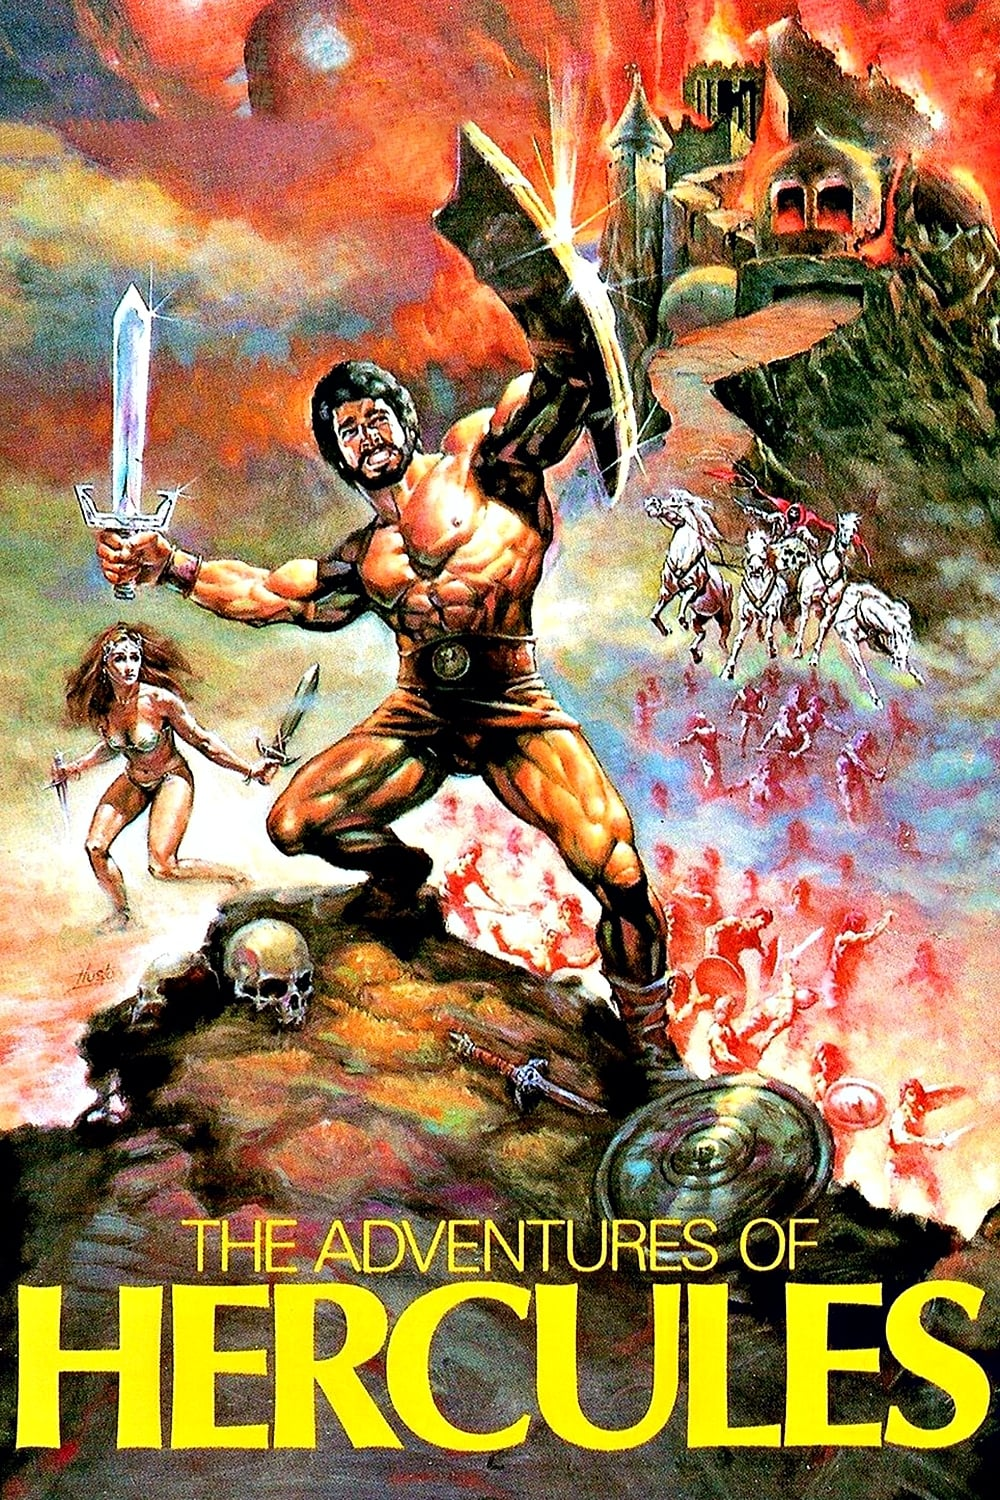 The Adventures of Hercules (1985)